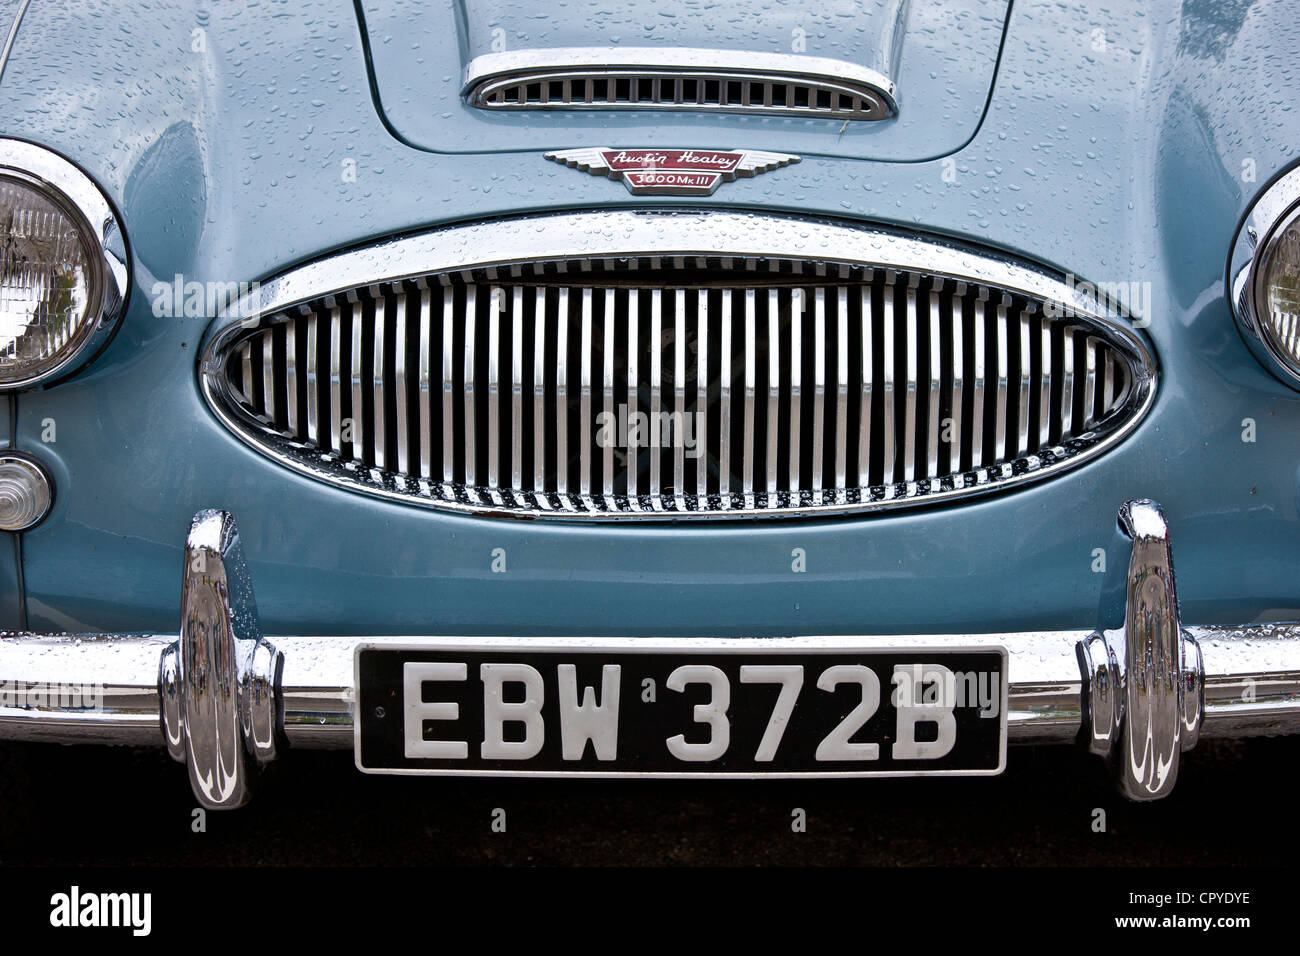 Austin Healey 3000 Mark III car at classic car rally at Brize Norton in Oxfordshire, UK - Stock Image